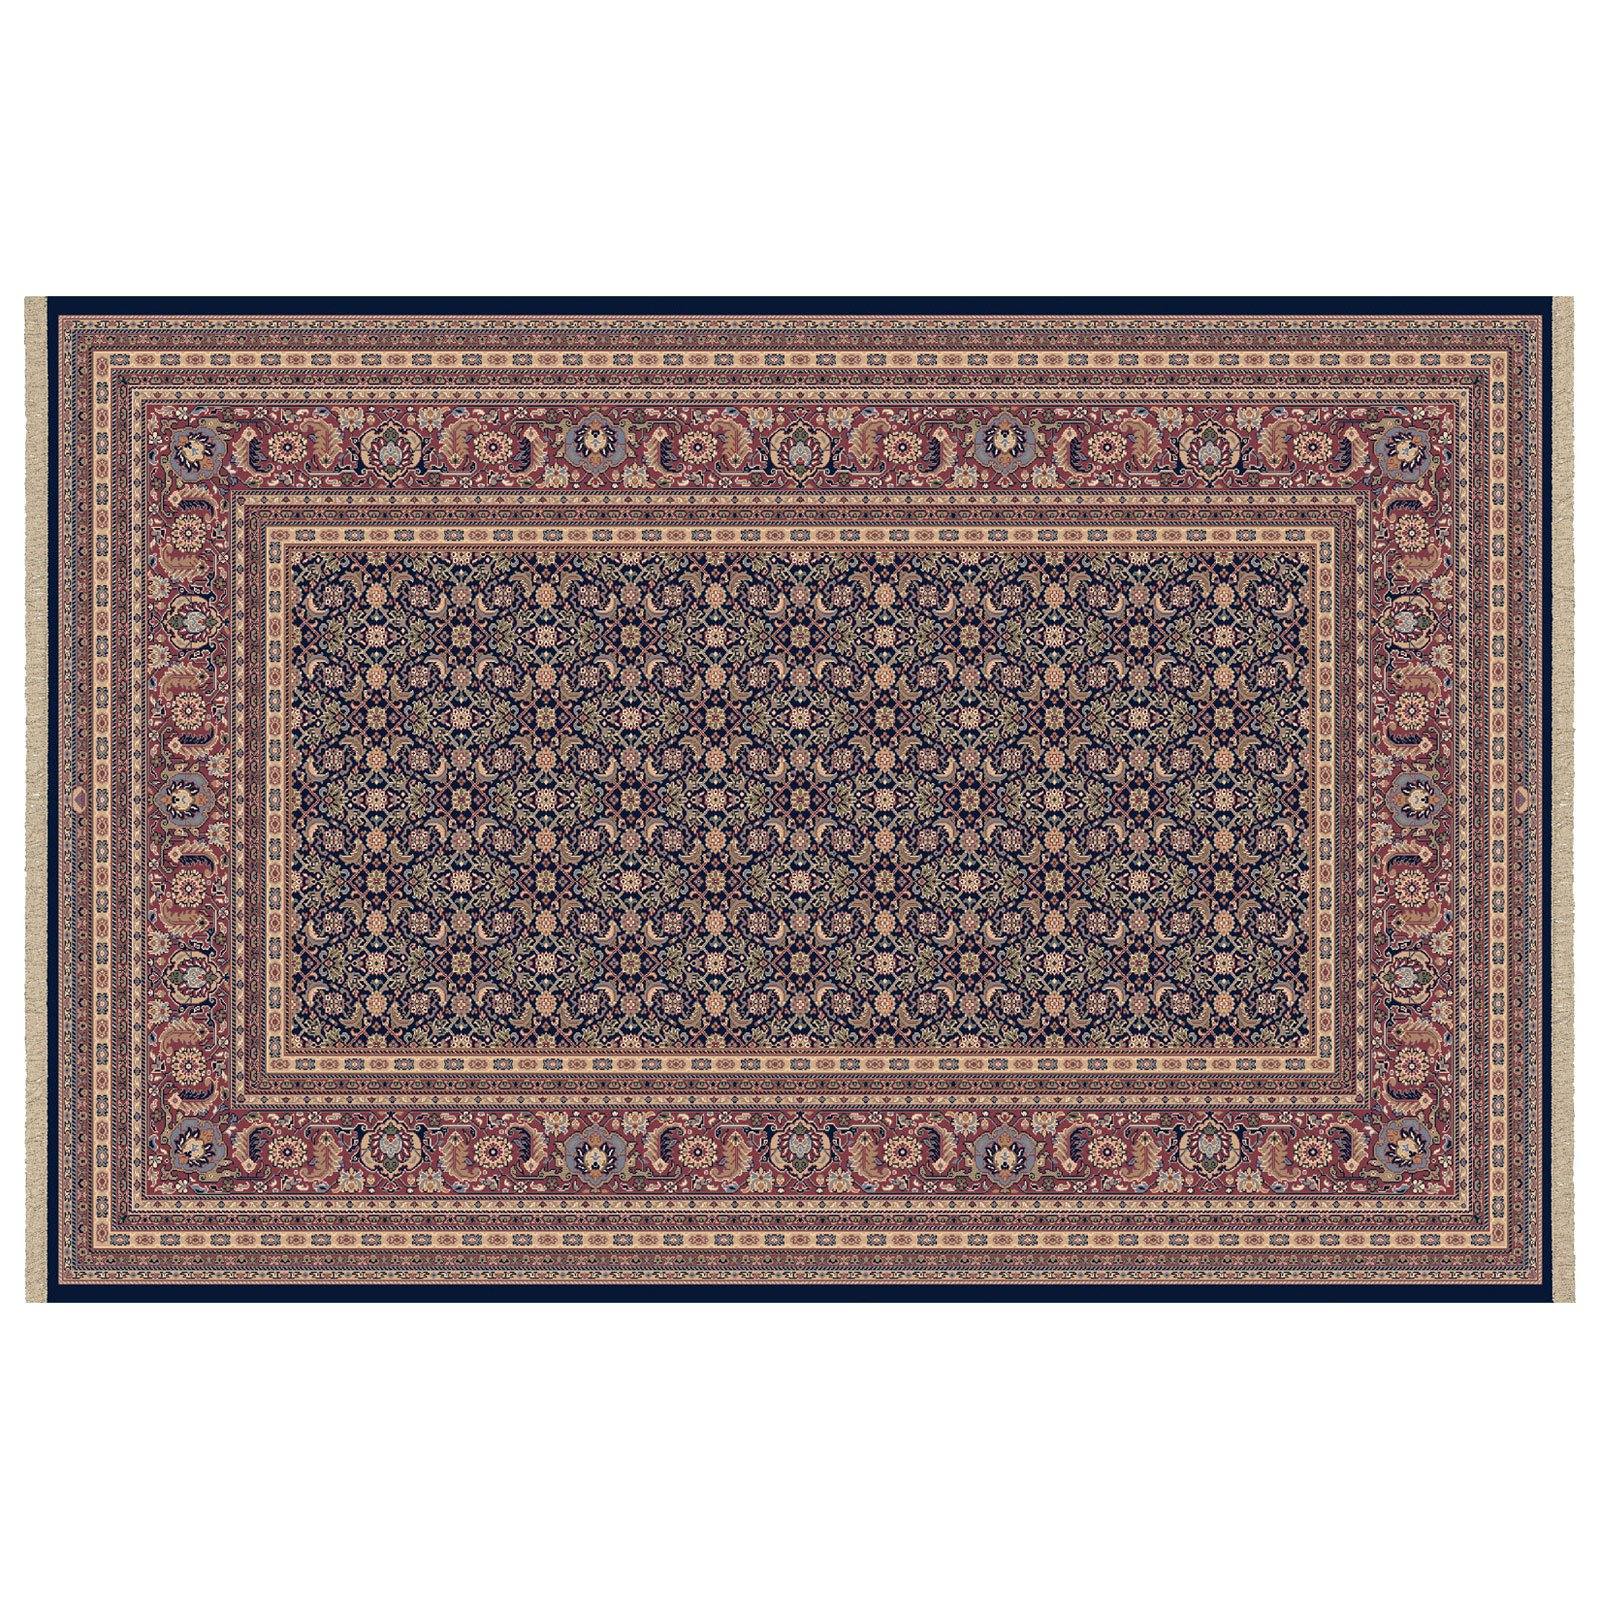 Dynamic Rugs Brilliant Collection Wool Hearth Rug-Navy Cyril by Dynamic Rugs